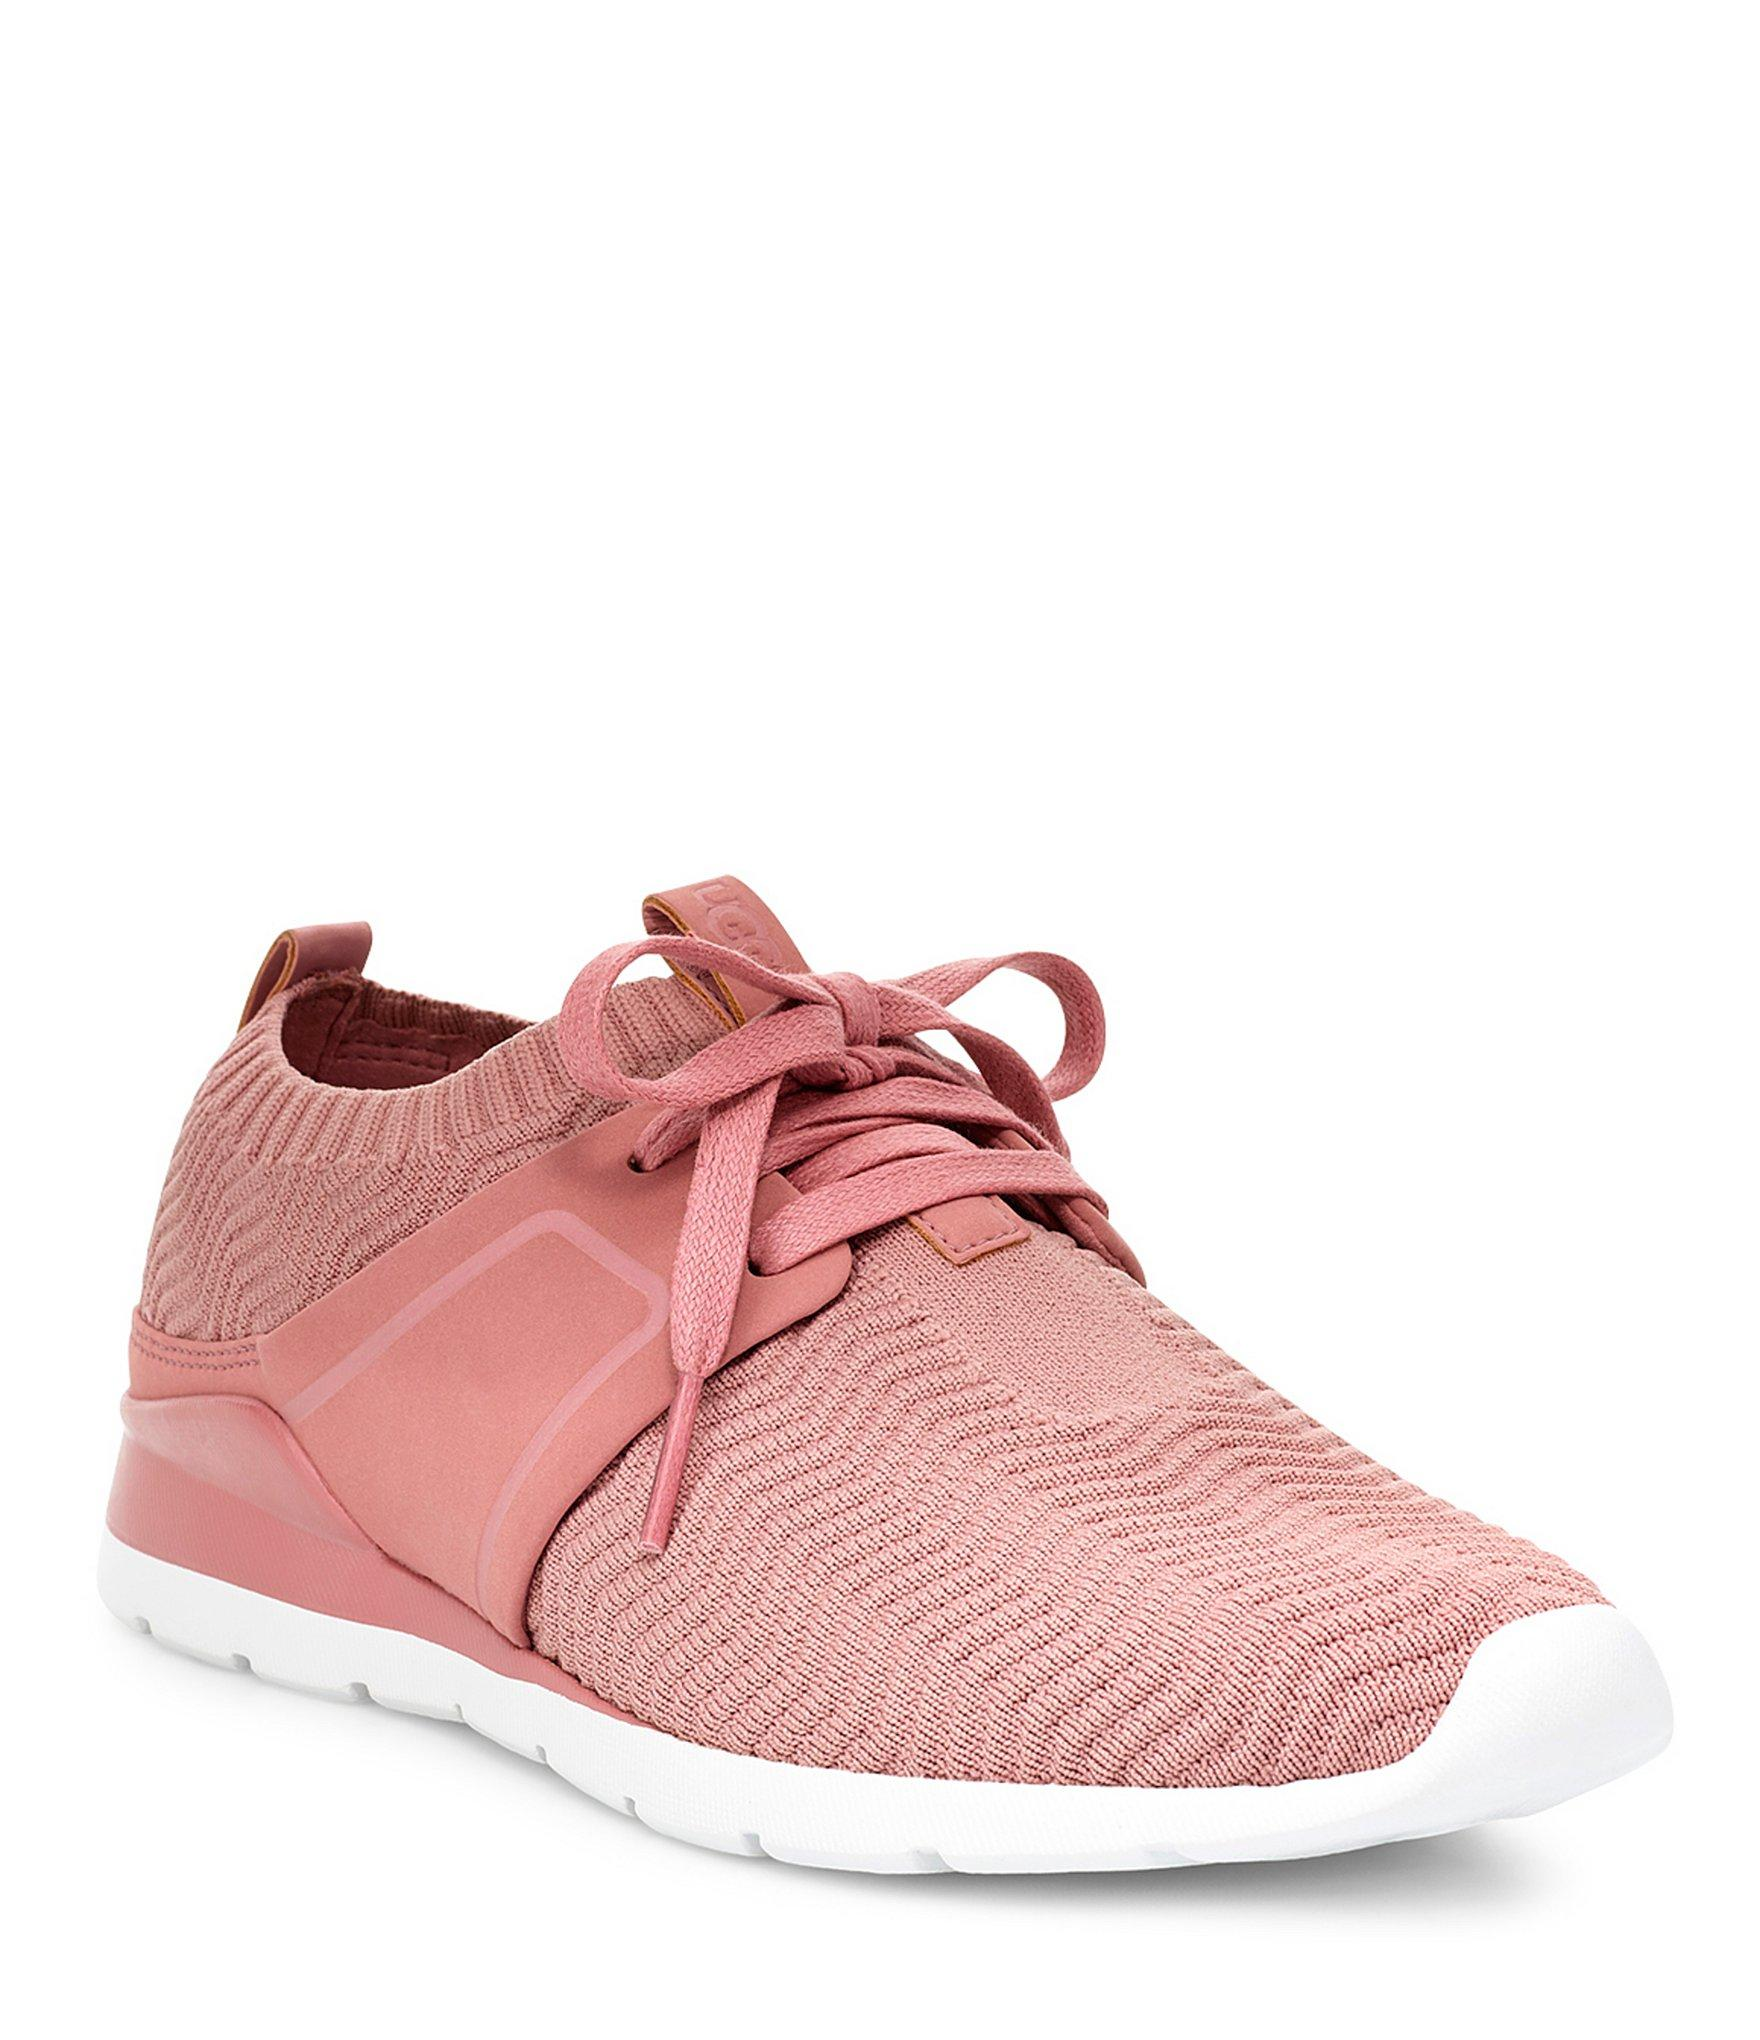 0fcf07fb615 Lyst - UGG Willows Soft Knit Sneakers in Pink